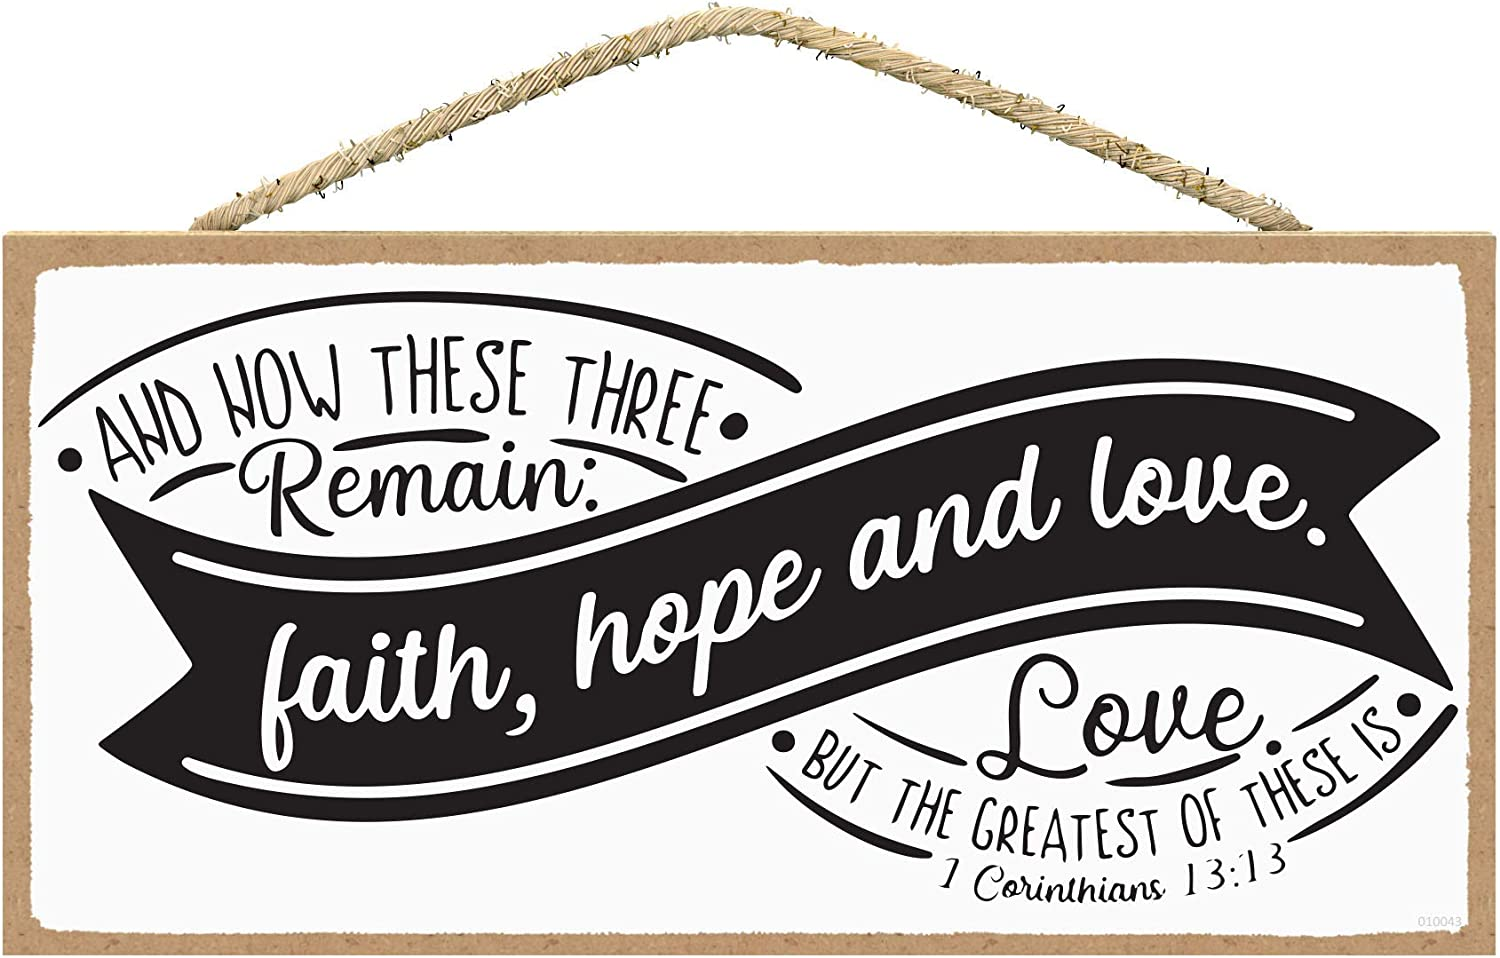 SARAH JOY'S Christian Decor - Religious Wall Decor - Bible Verses Wall Art - Christian Home Decor - Faith Wall Decor Sign 5 x 10 inches (Greatest of These)